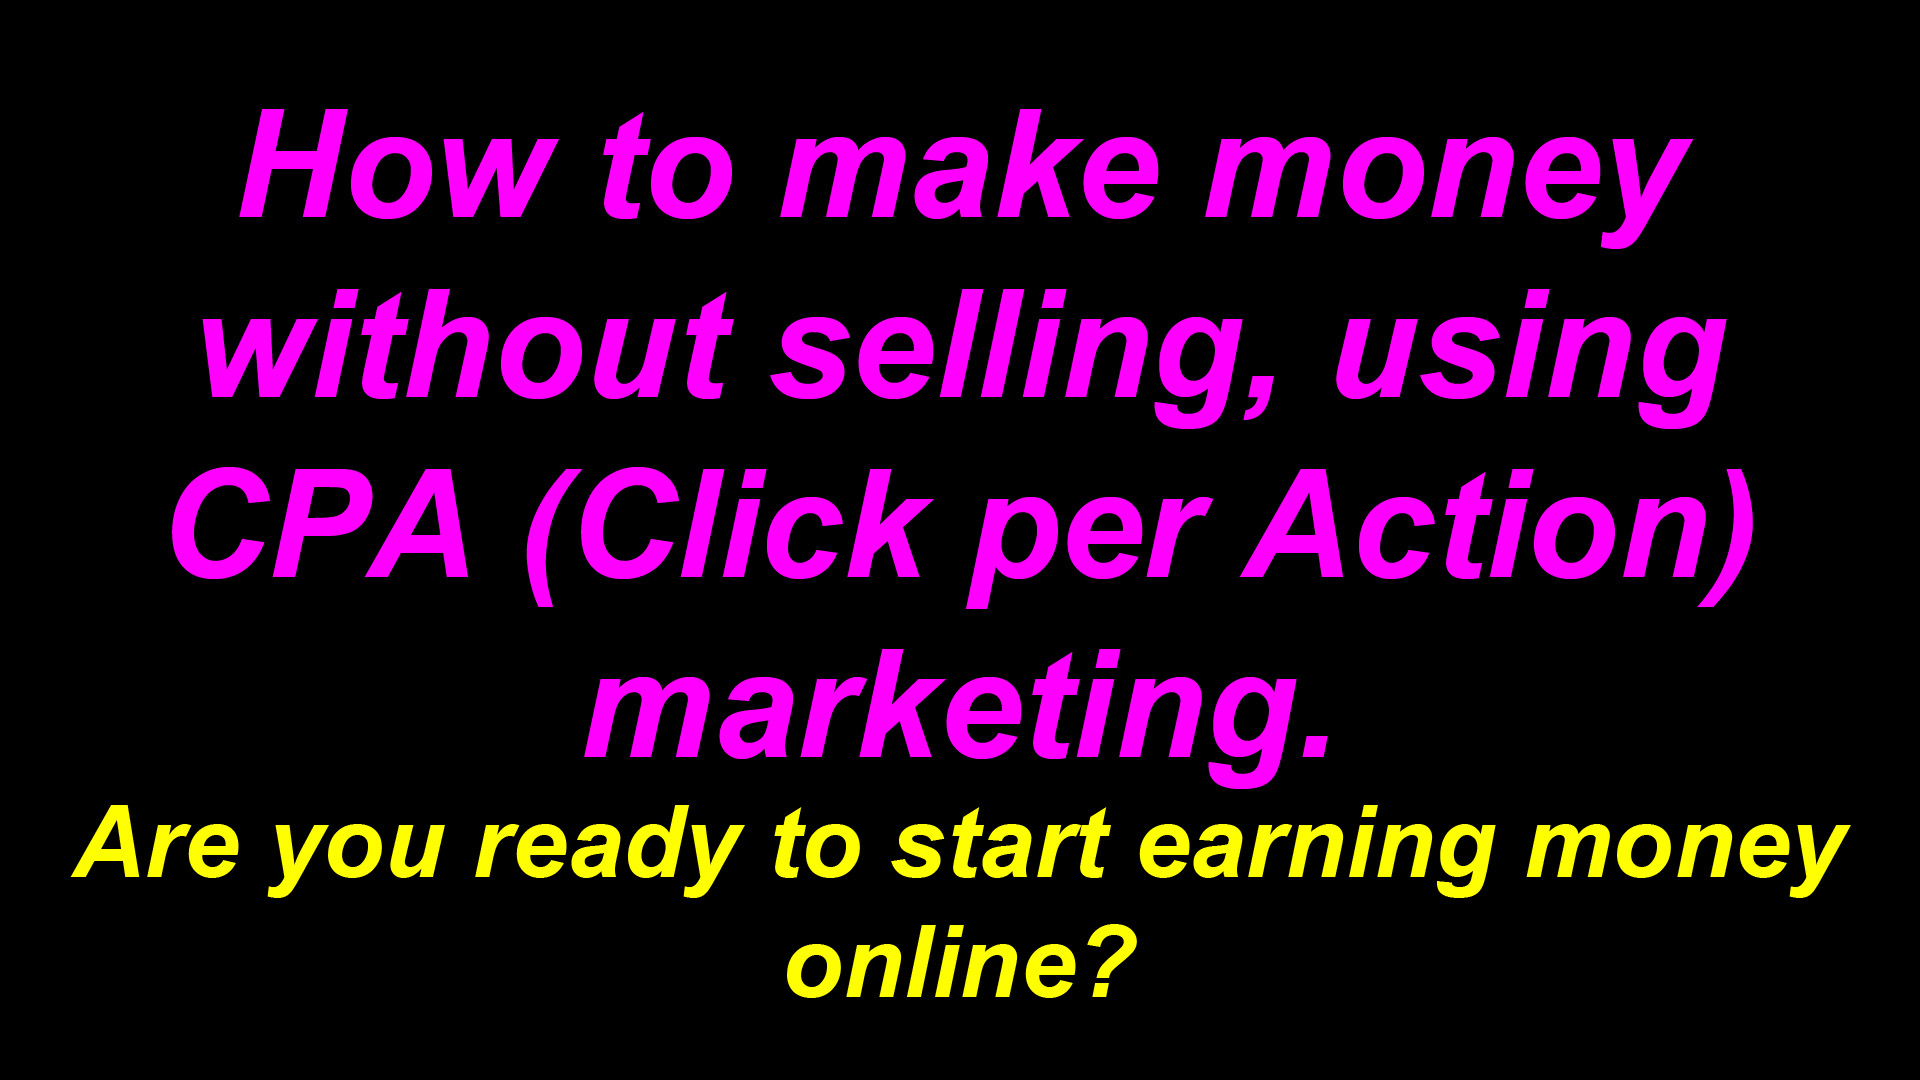 How to make money without selling using CPA